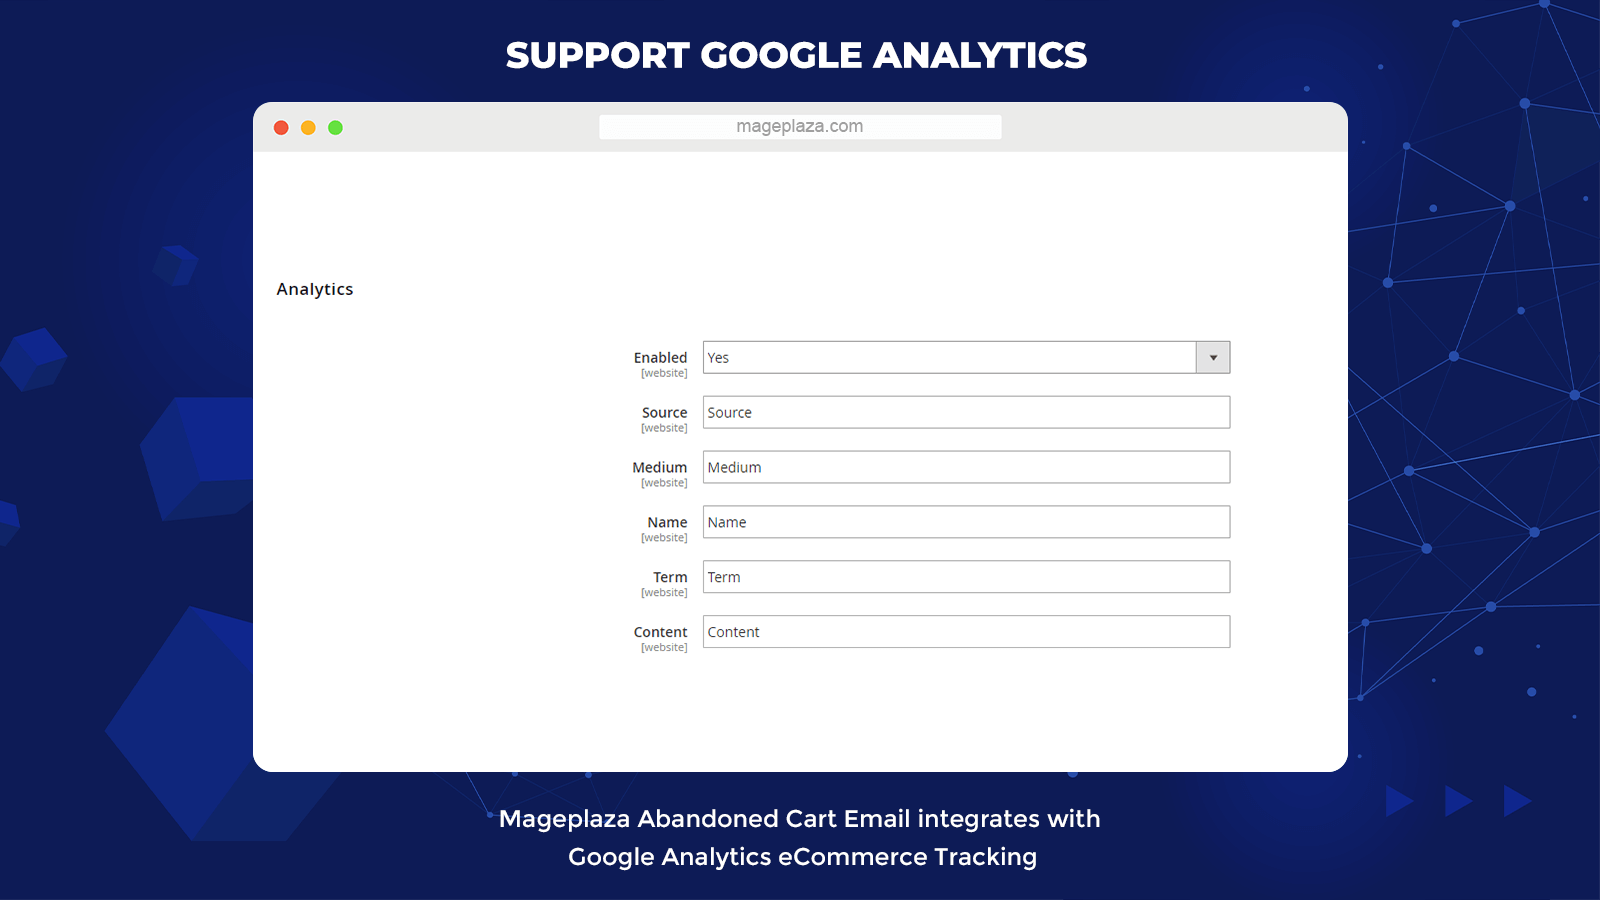 magento 2 abandoned cart email Supports Google Analytics